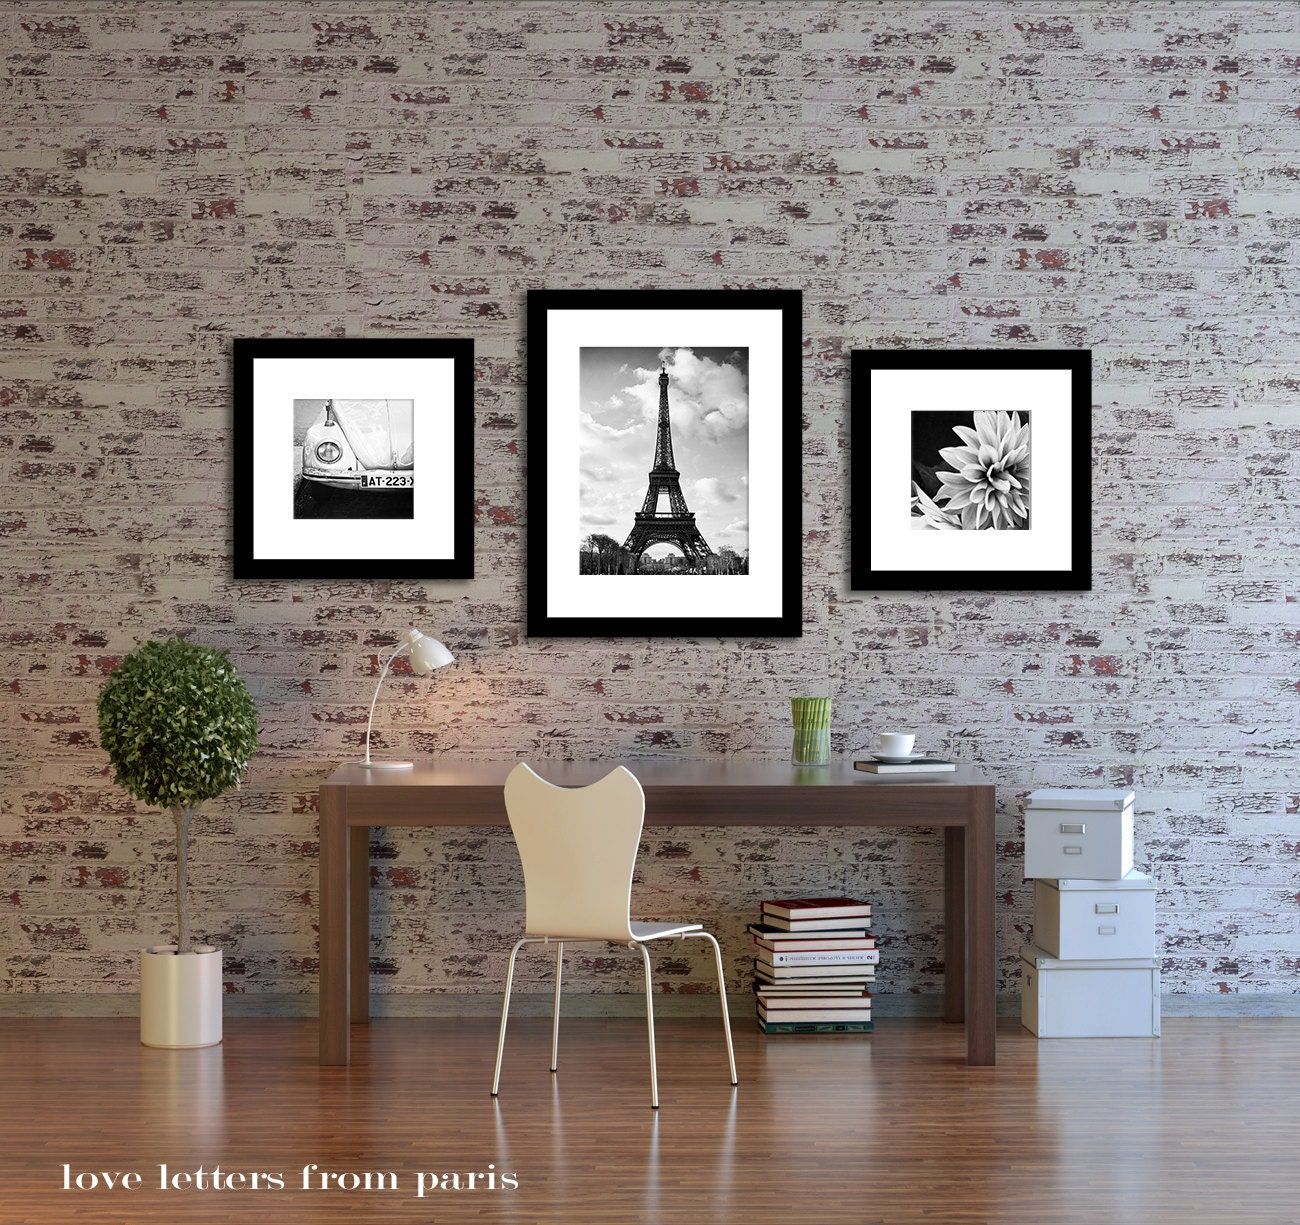 Paris photograph home decor paris wall art paris by for Wall decoration items